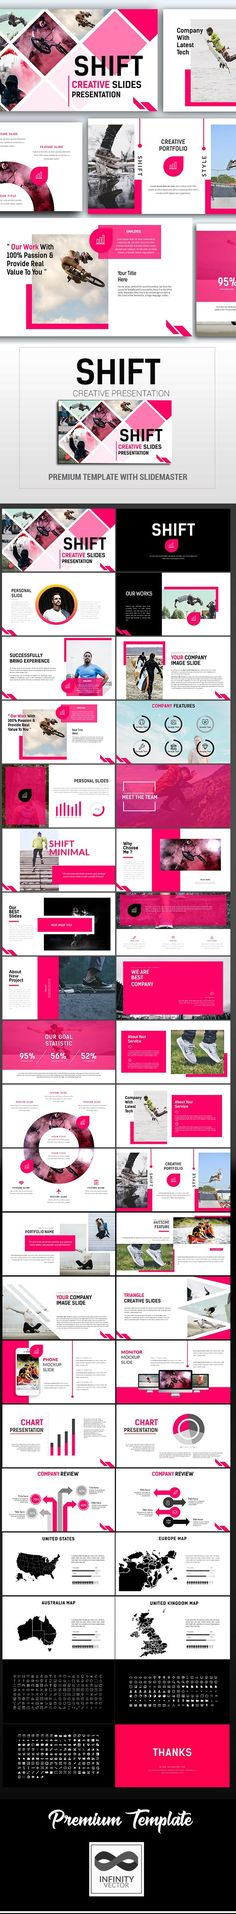 Shift Creative Presentation — Powerpoint PPT #slides #powerpoint template • Available here ➝ https://graphicriver.net/item/shift-creative-presentation/20966410?ref=pxcr